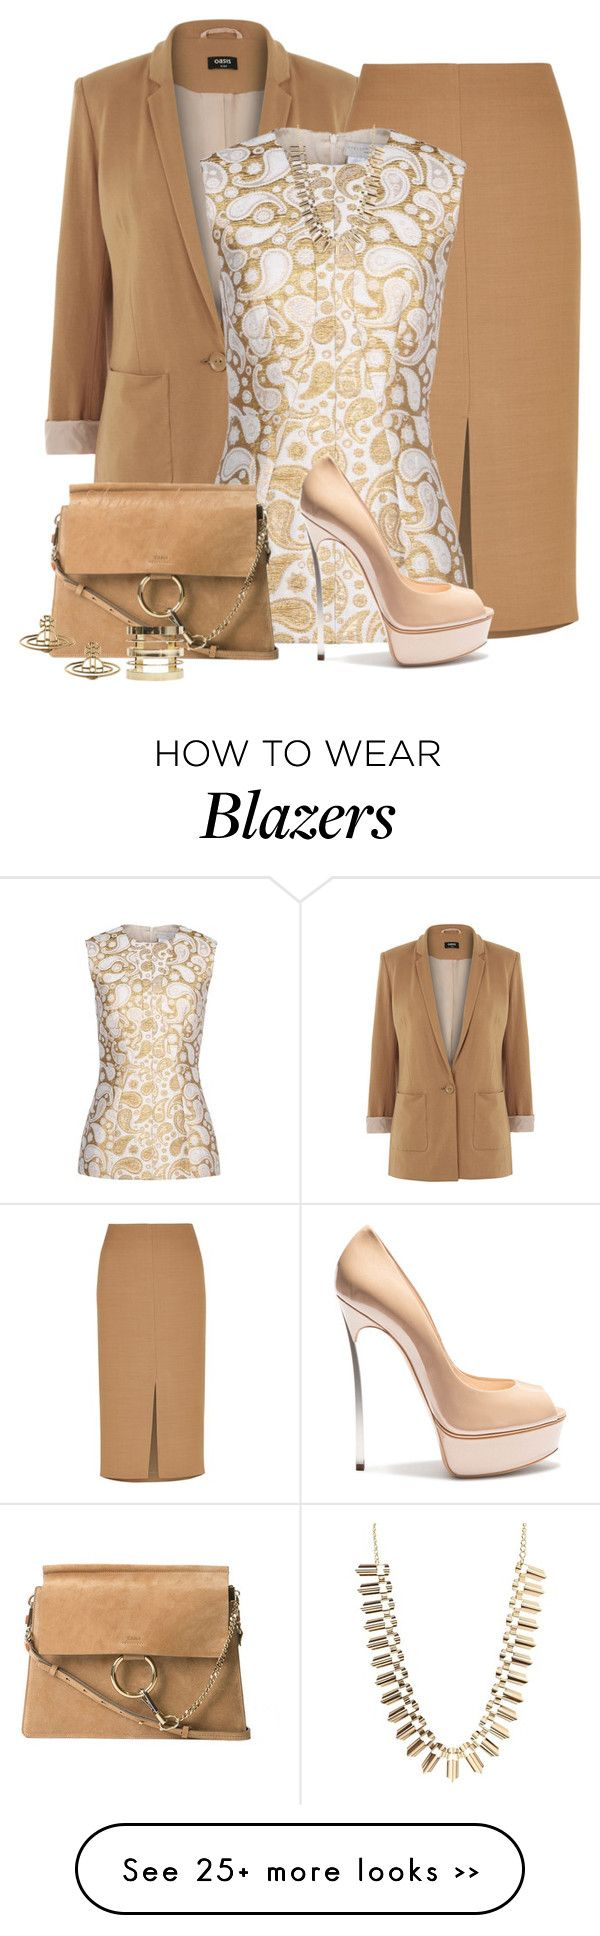 """STELLA MCCARTNEY BLOUSE"" by arjanadesign on Polyvore featuring Oasis, Jaeger, STELLA McCARTNEY, Casadei, Chloé, Charlotte Russe and Wet Seal"